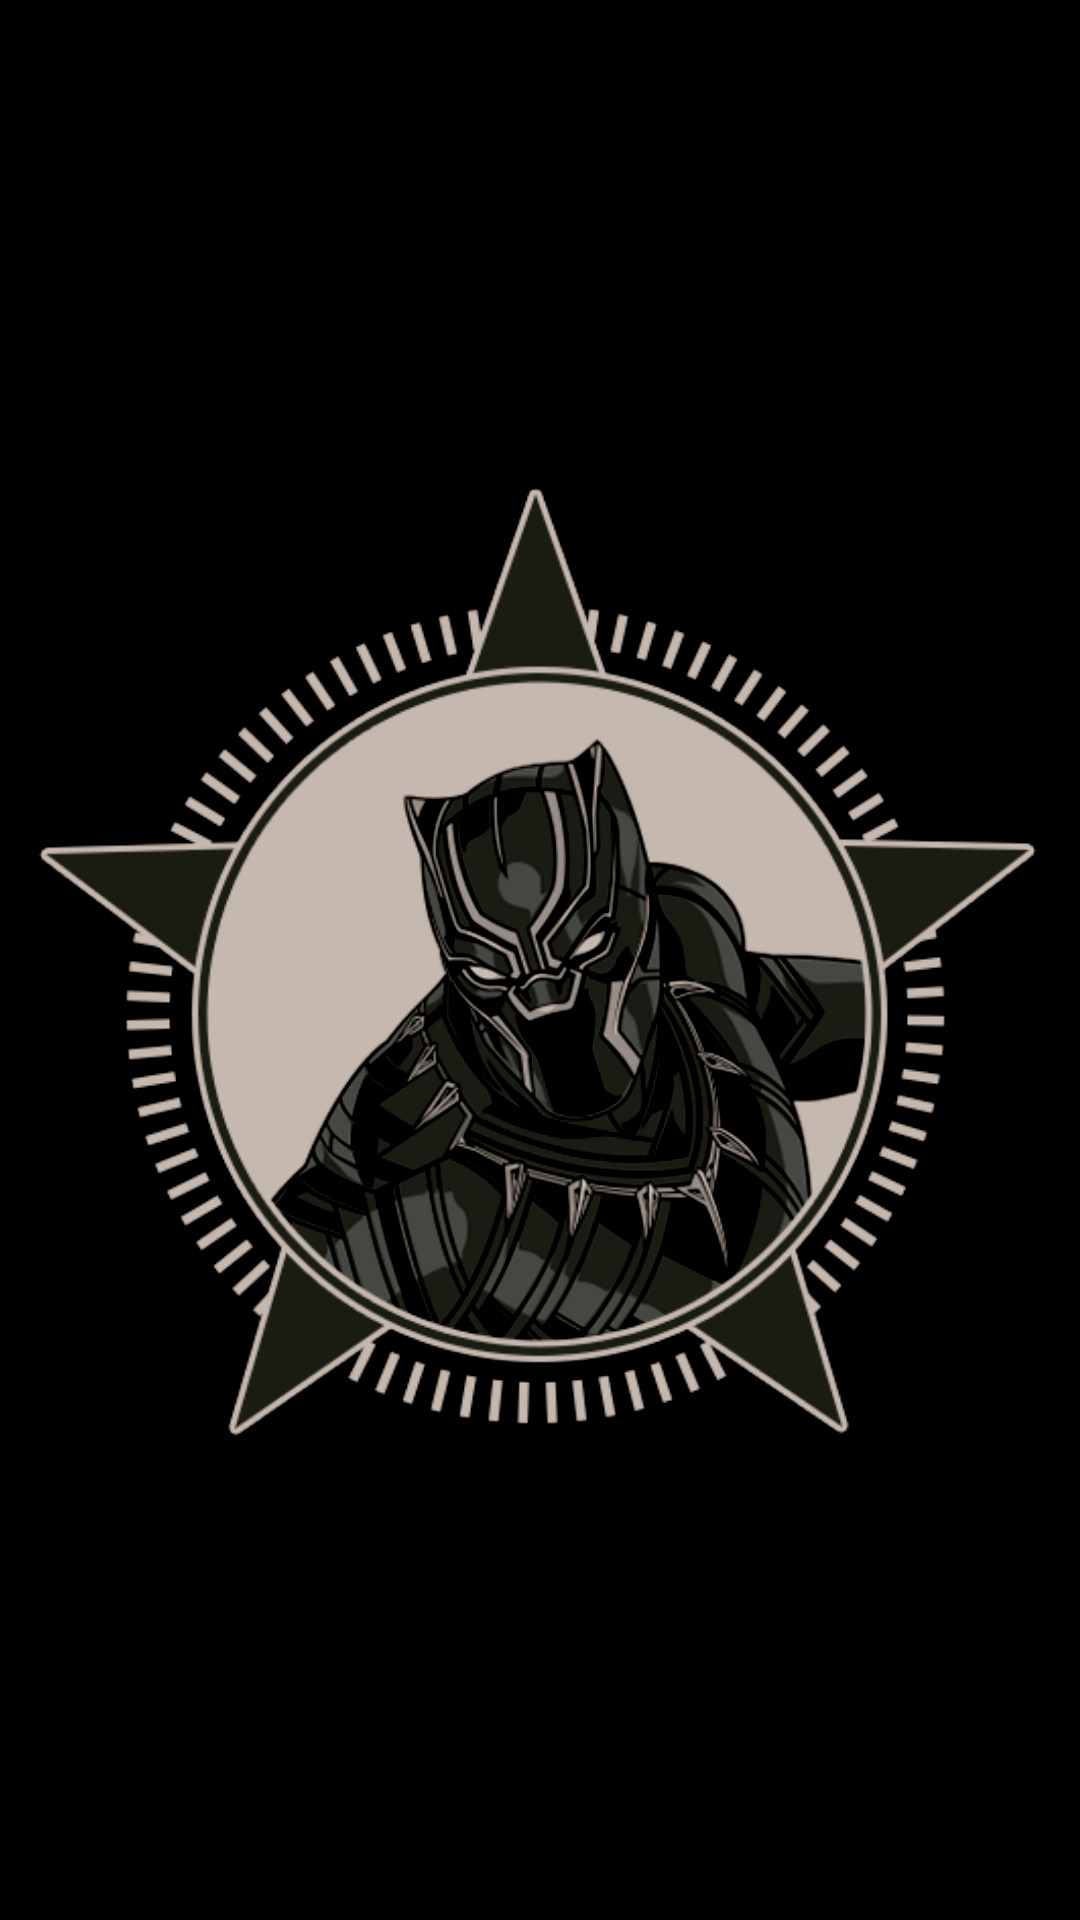 The Black Panther Wallpapers 68 Images